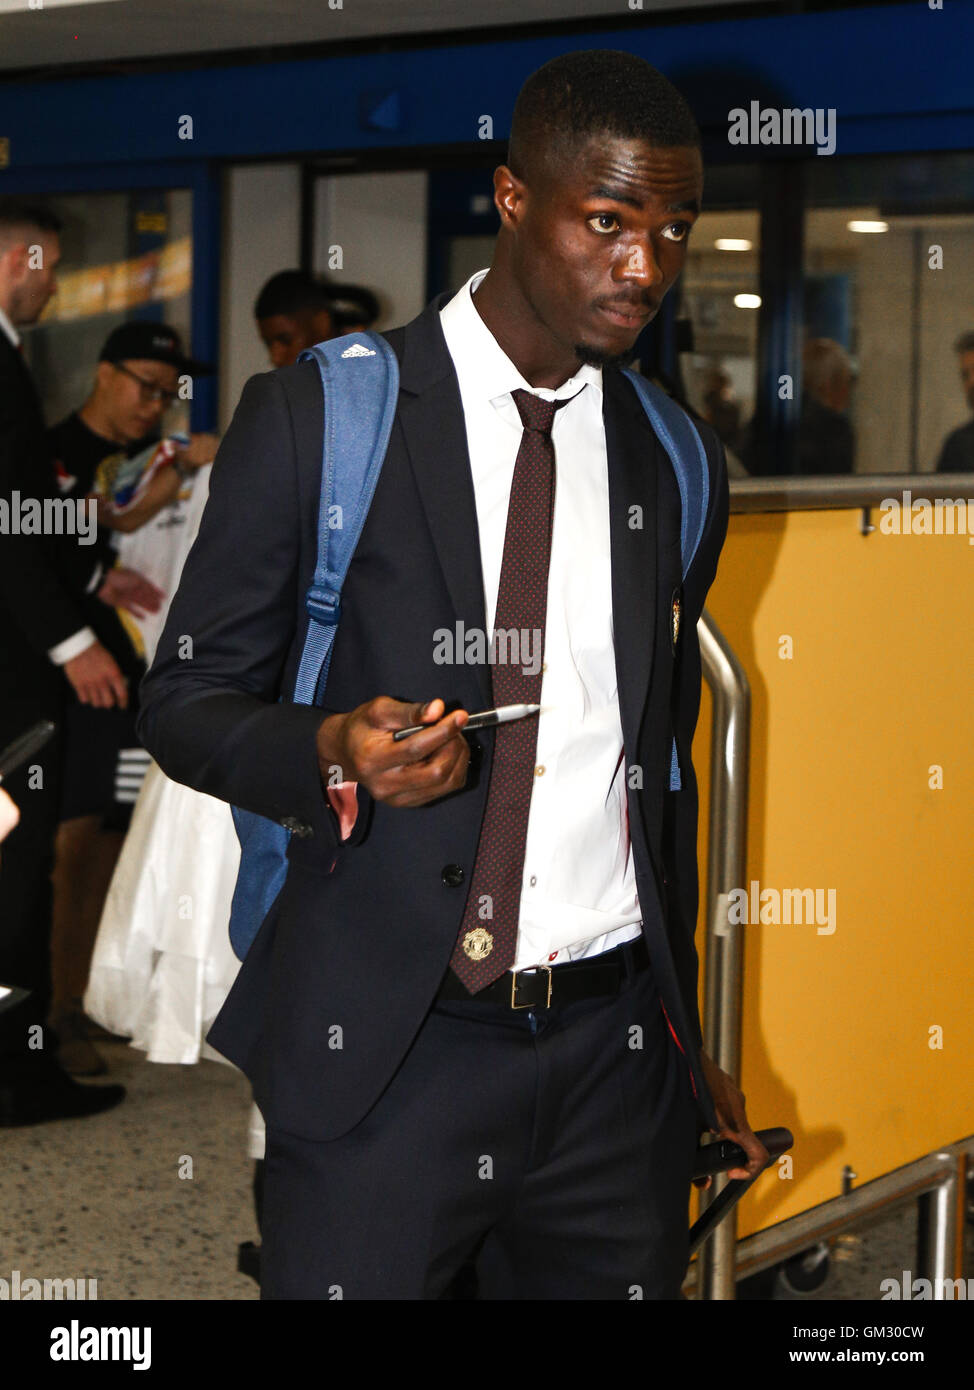 Eric Bailly leaves Manchester airport for Manchester United's pre-season tour of China. - Stock Image